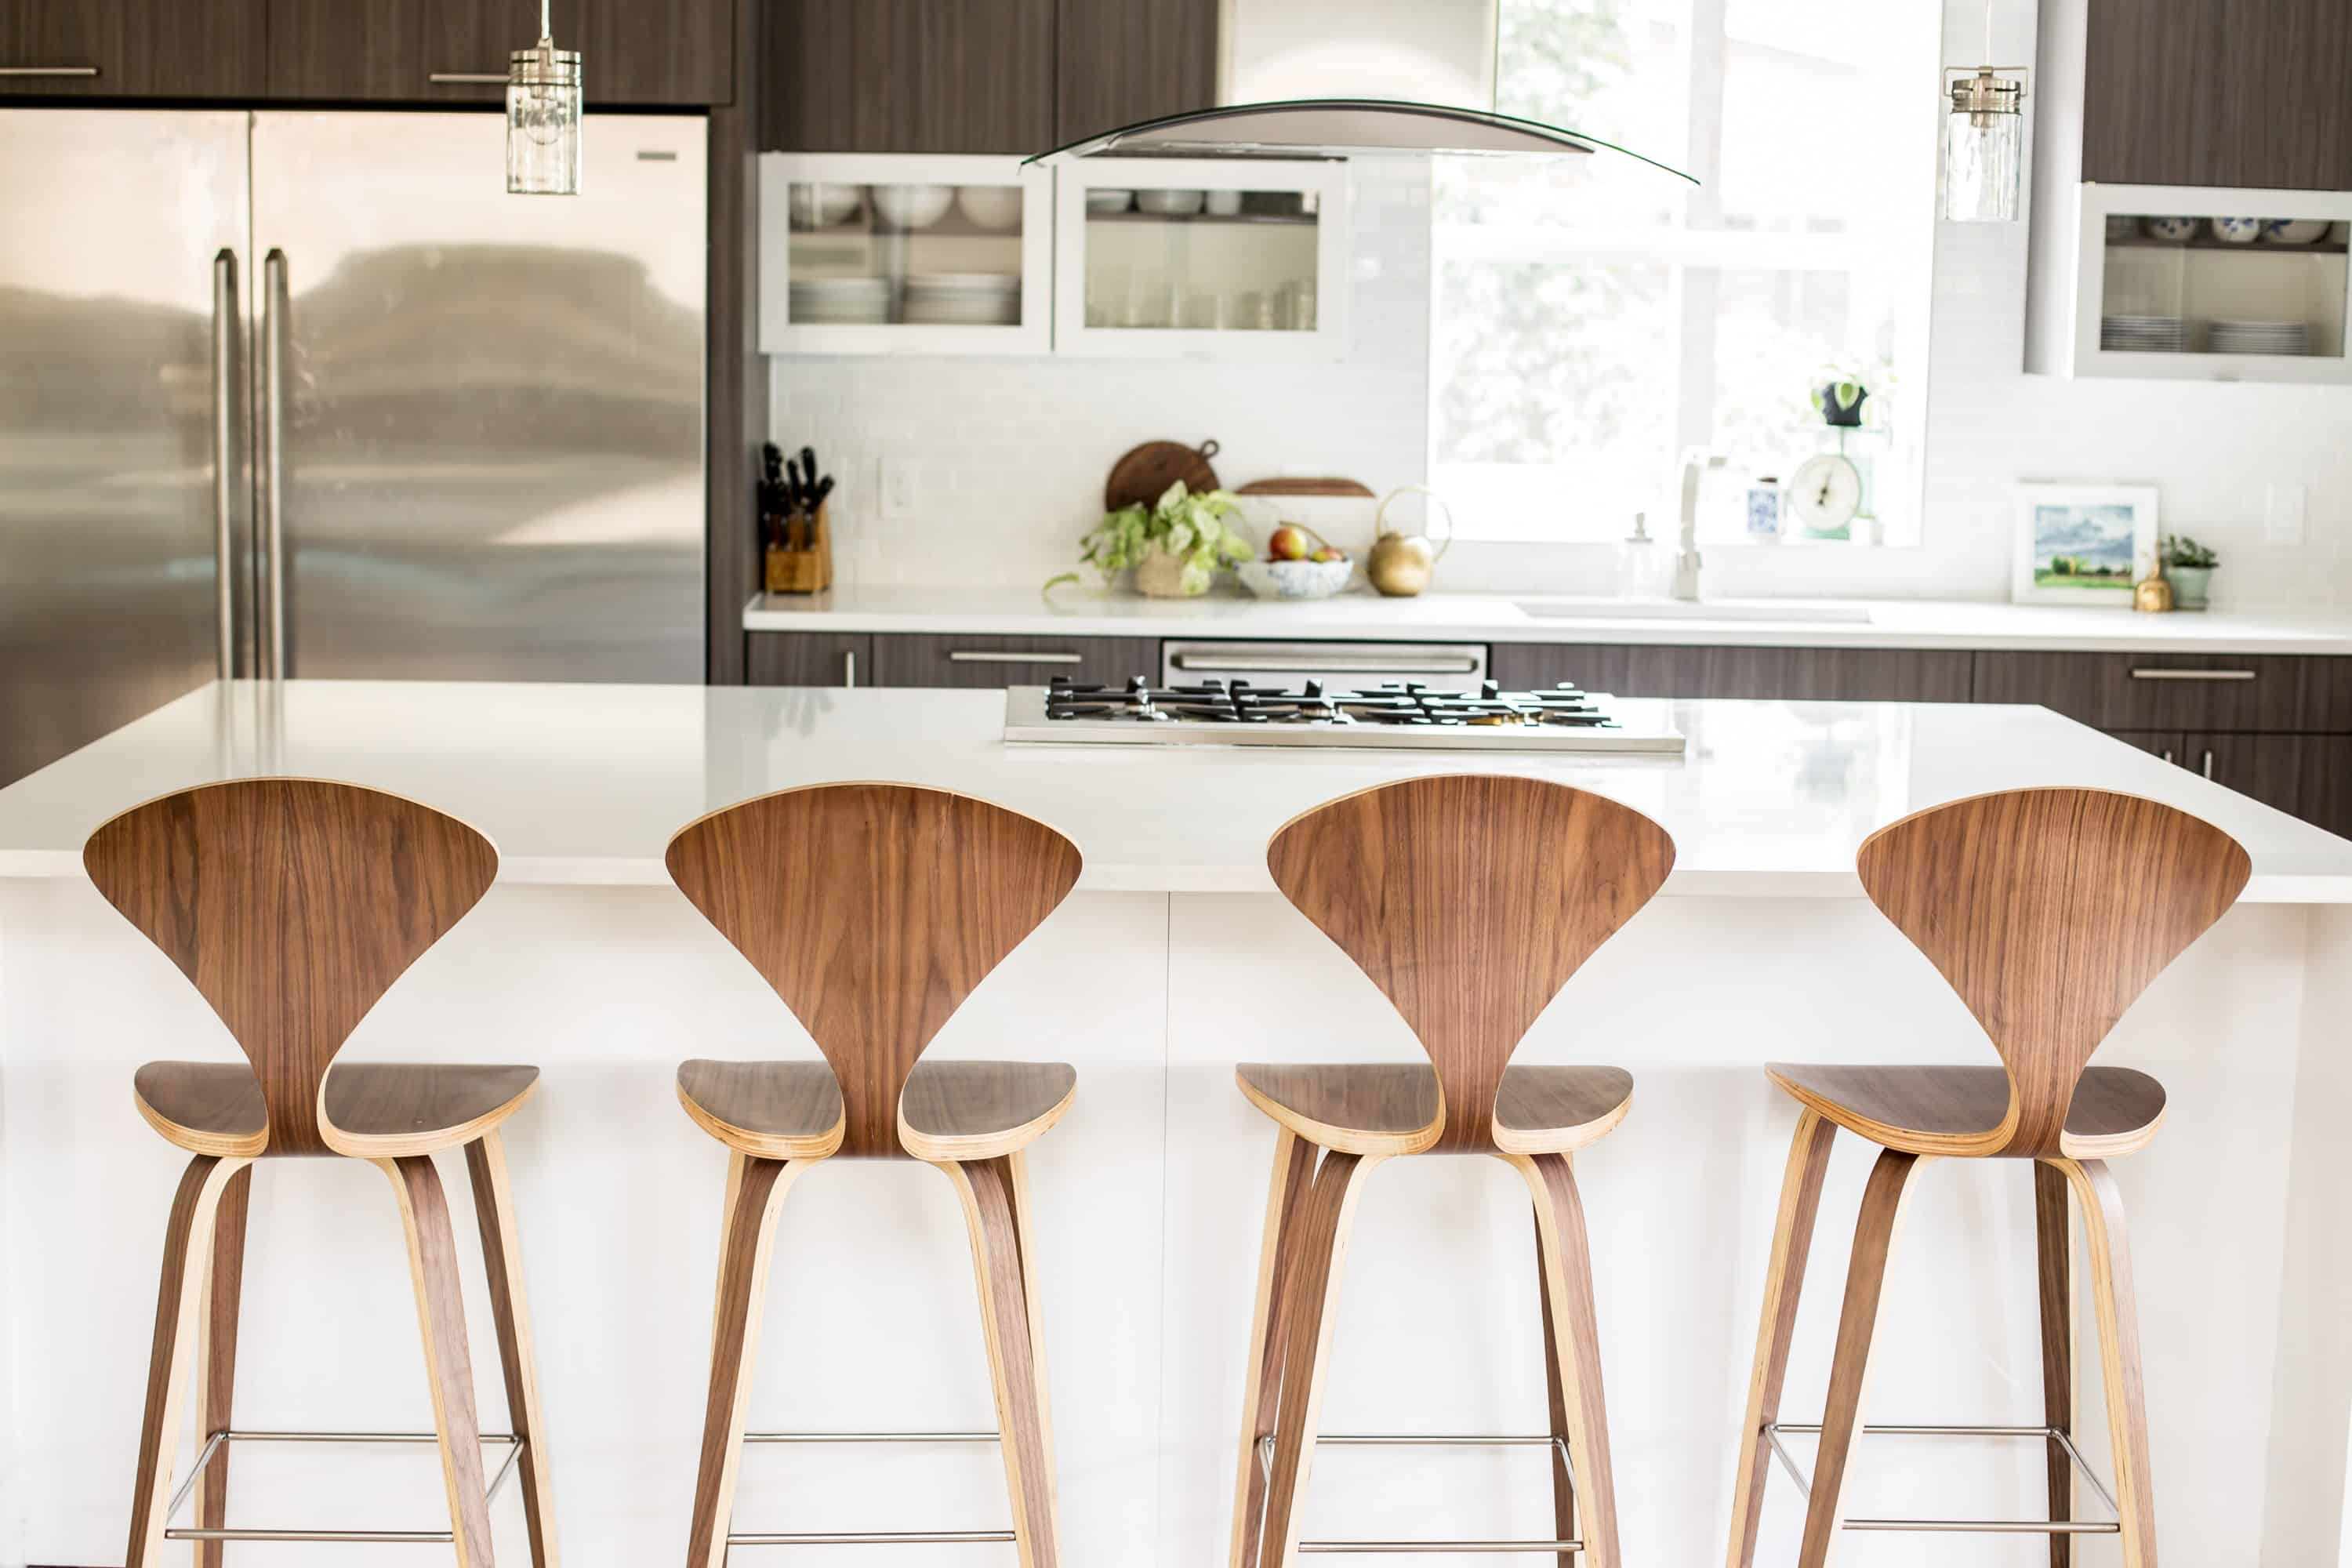 Mid-century stools are fun and contemporary in small doses.